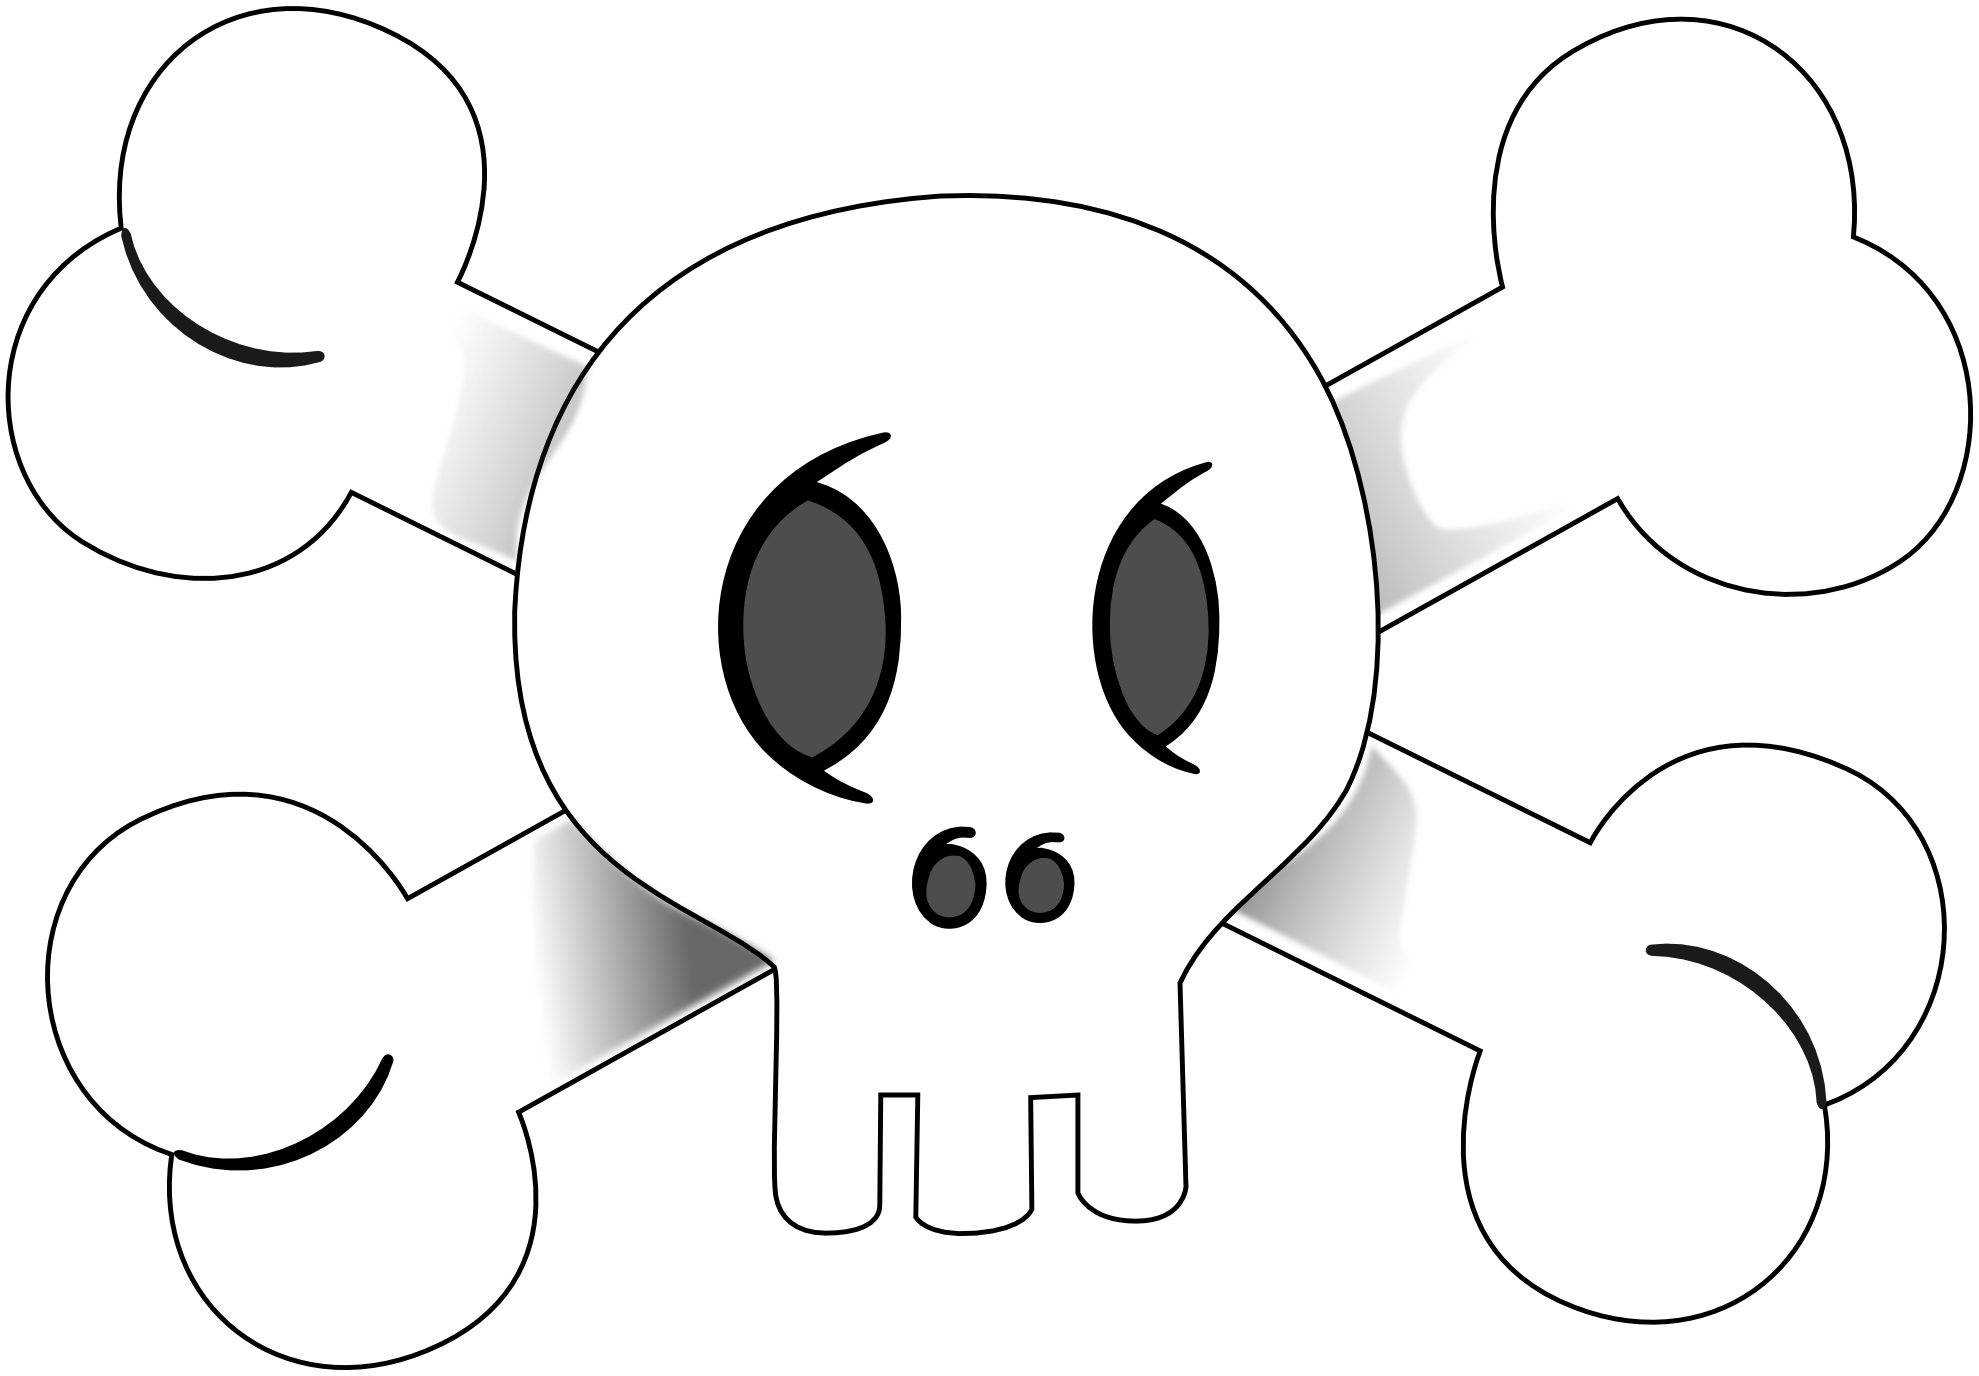 pirate flag clipart black and white